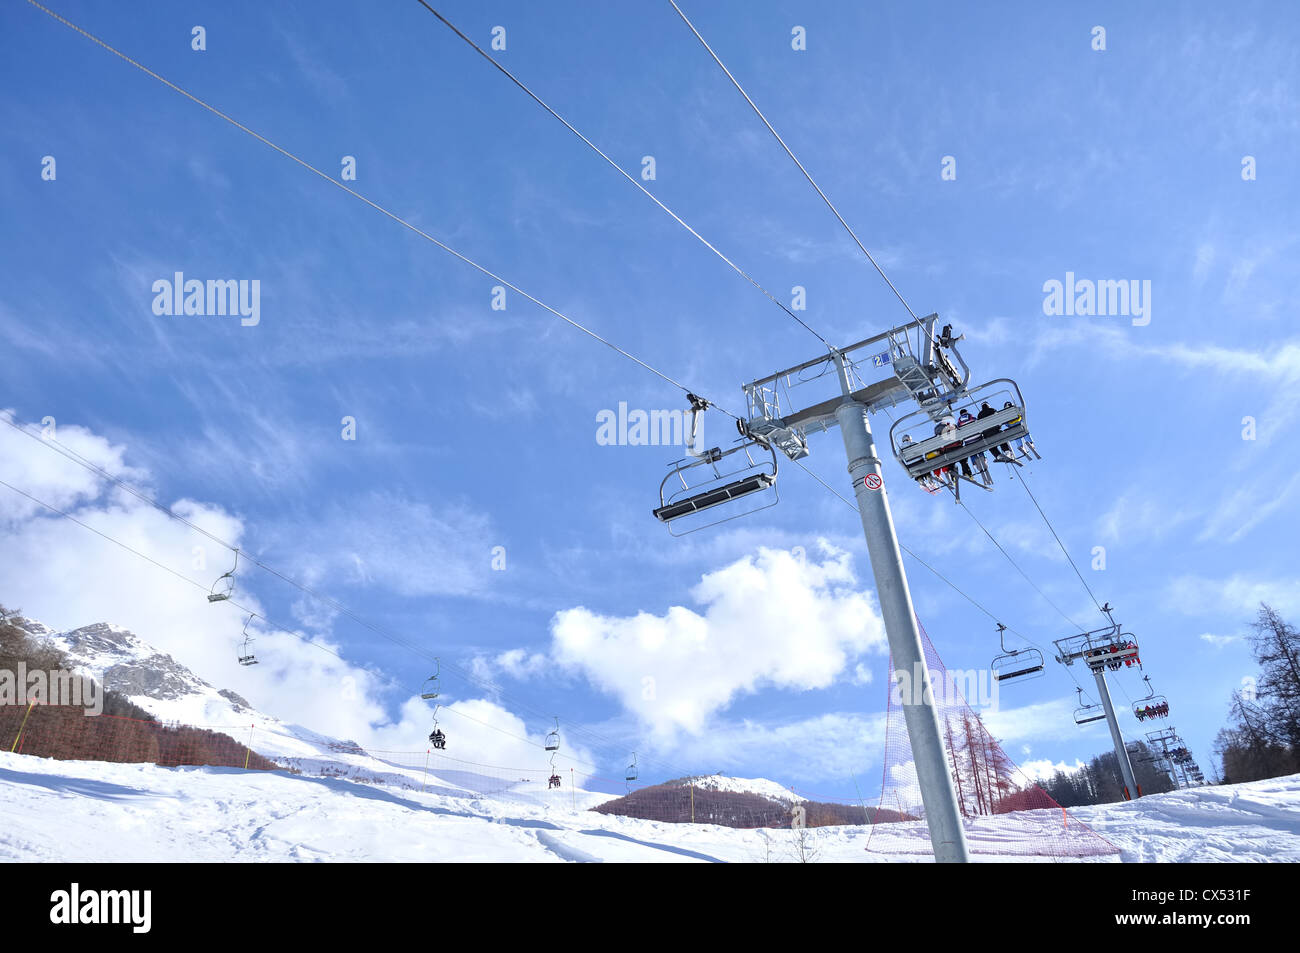 chairlifts carrying skiers to the slopes Stock Photo